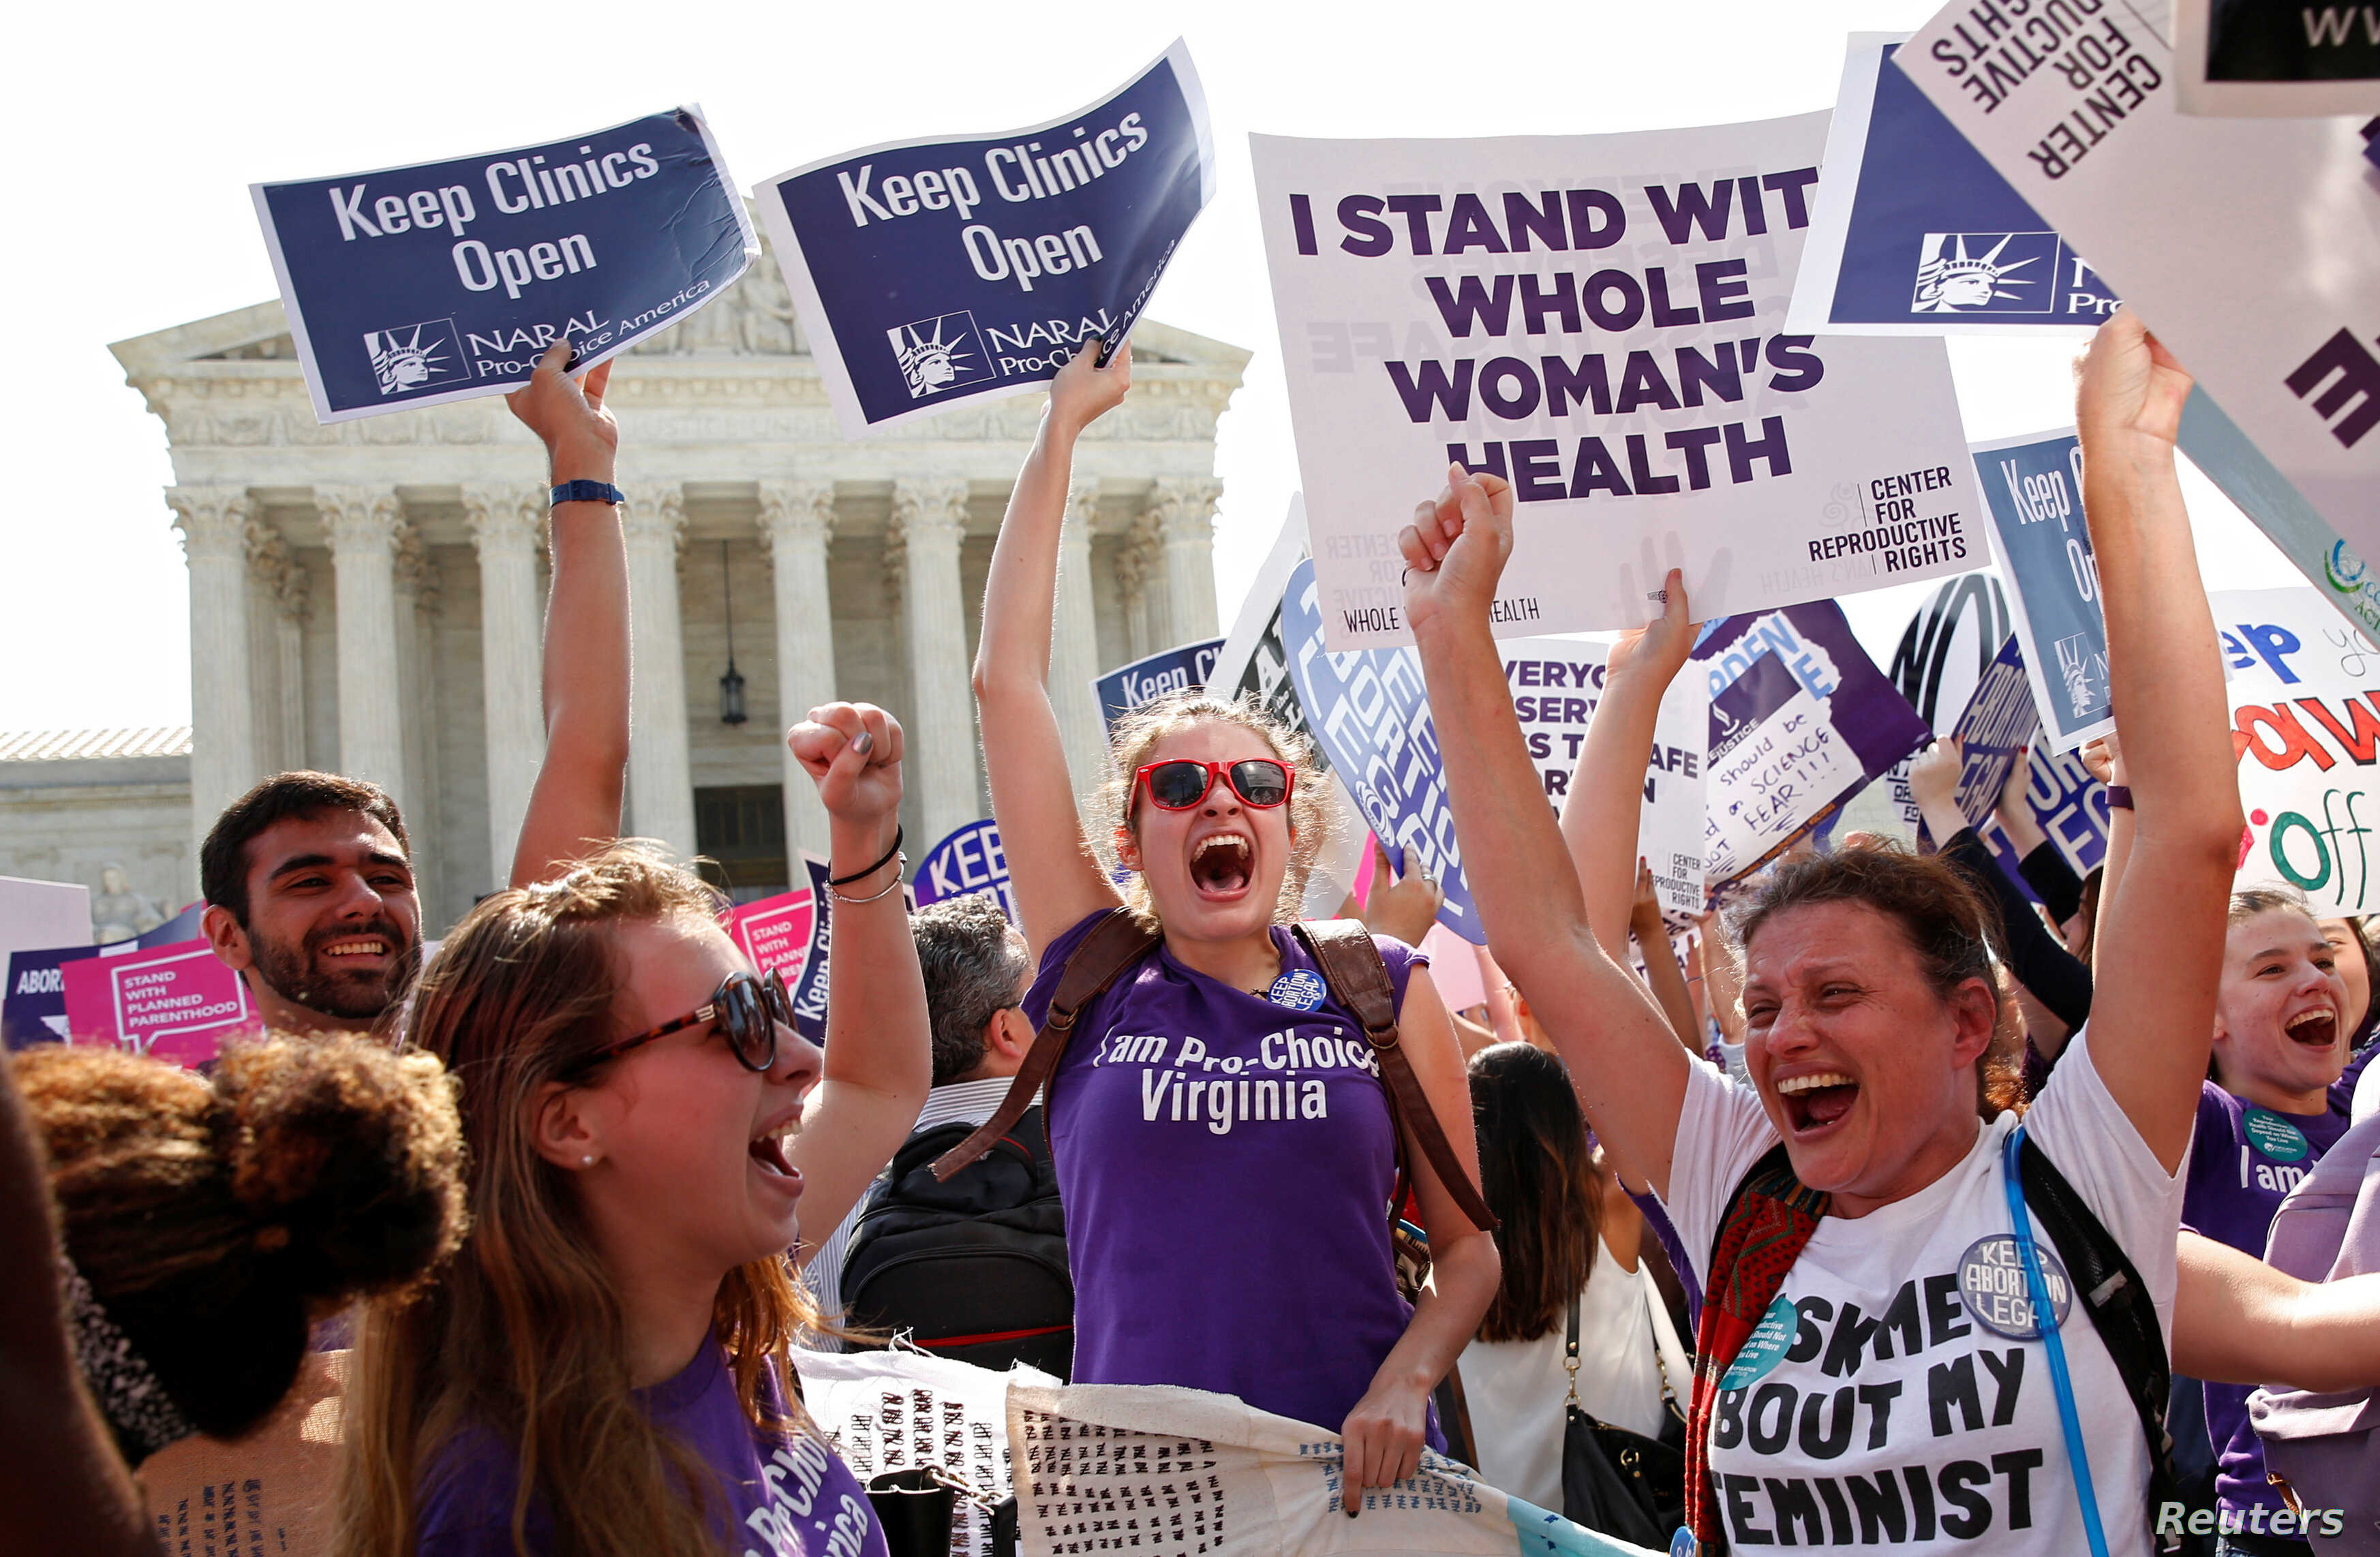 Demonstrators celebrate at the U.S. Supreme Court after the court struck down a Texas law imposing strict regulations on abortion doctors and facilities that its critics contended were specifically designed to shut down clinics in Washington June 27,...